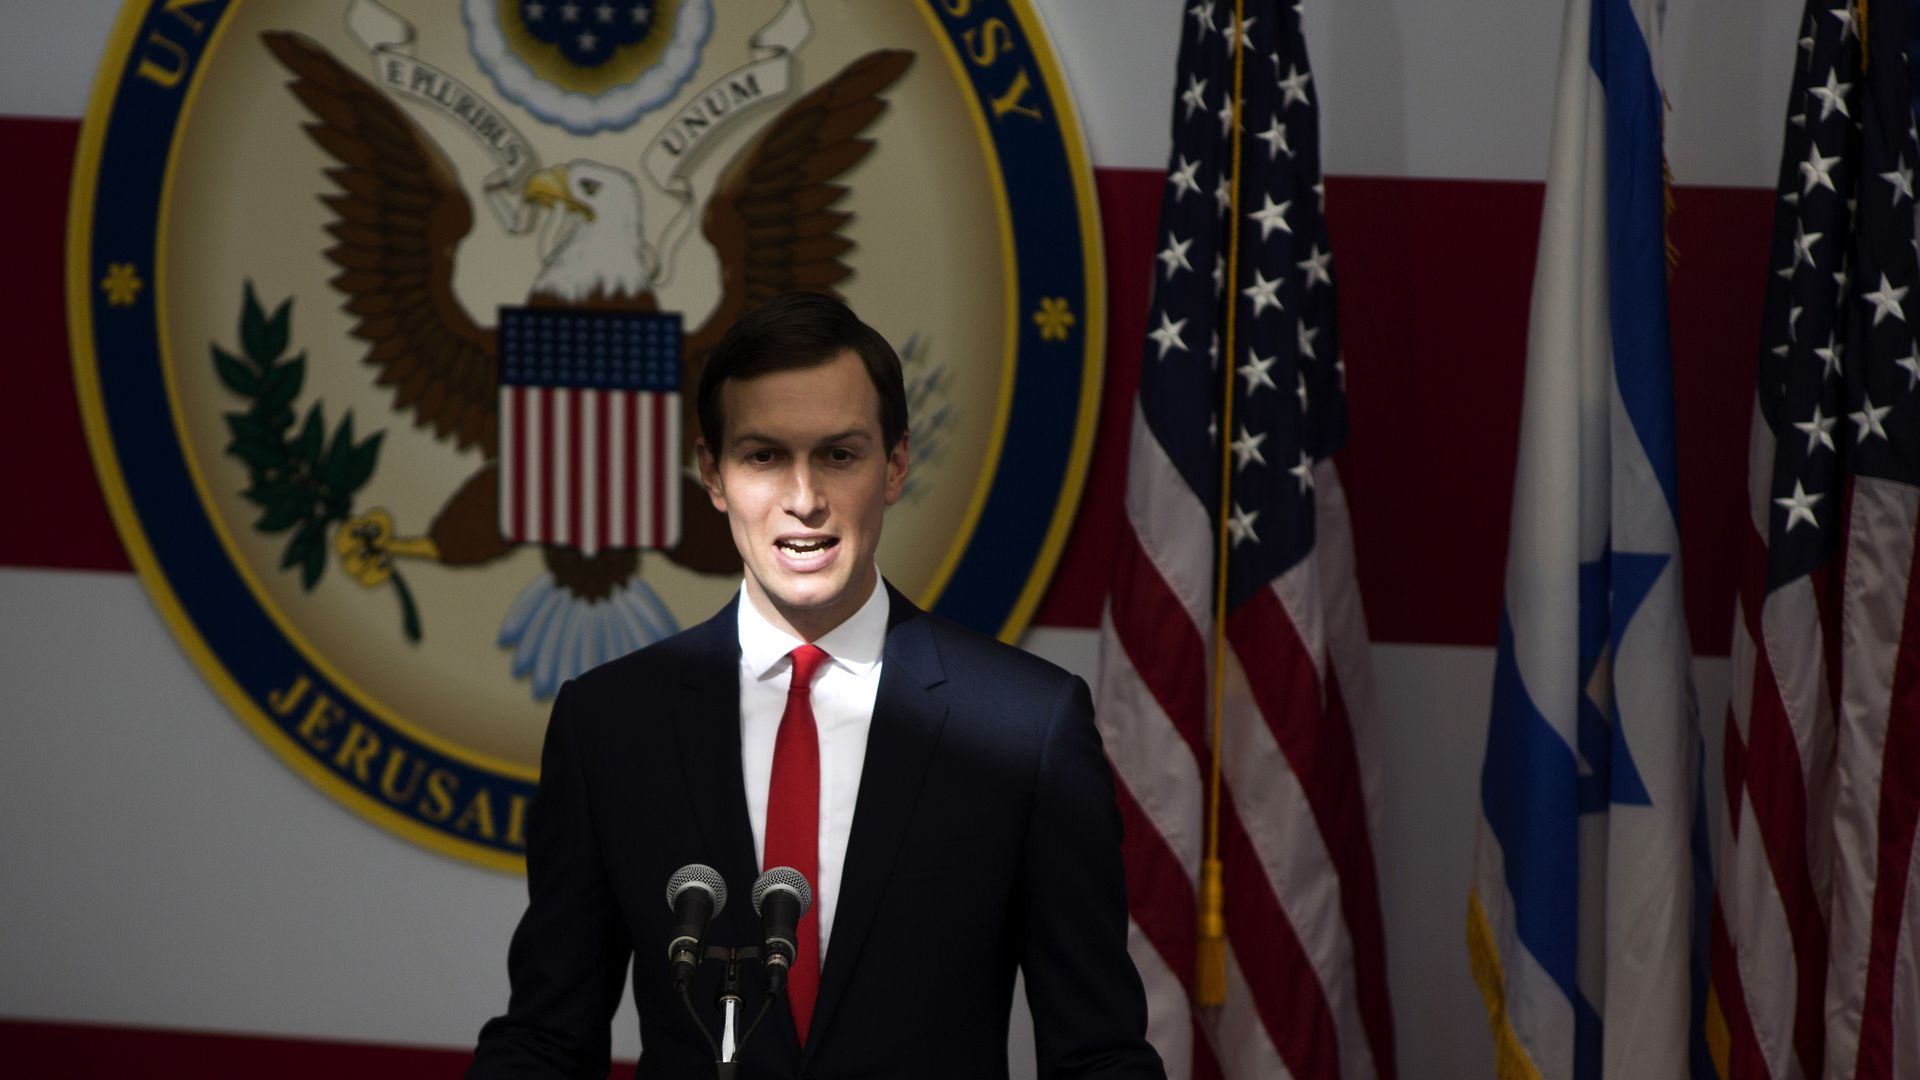 Kushner stands behind a podium